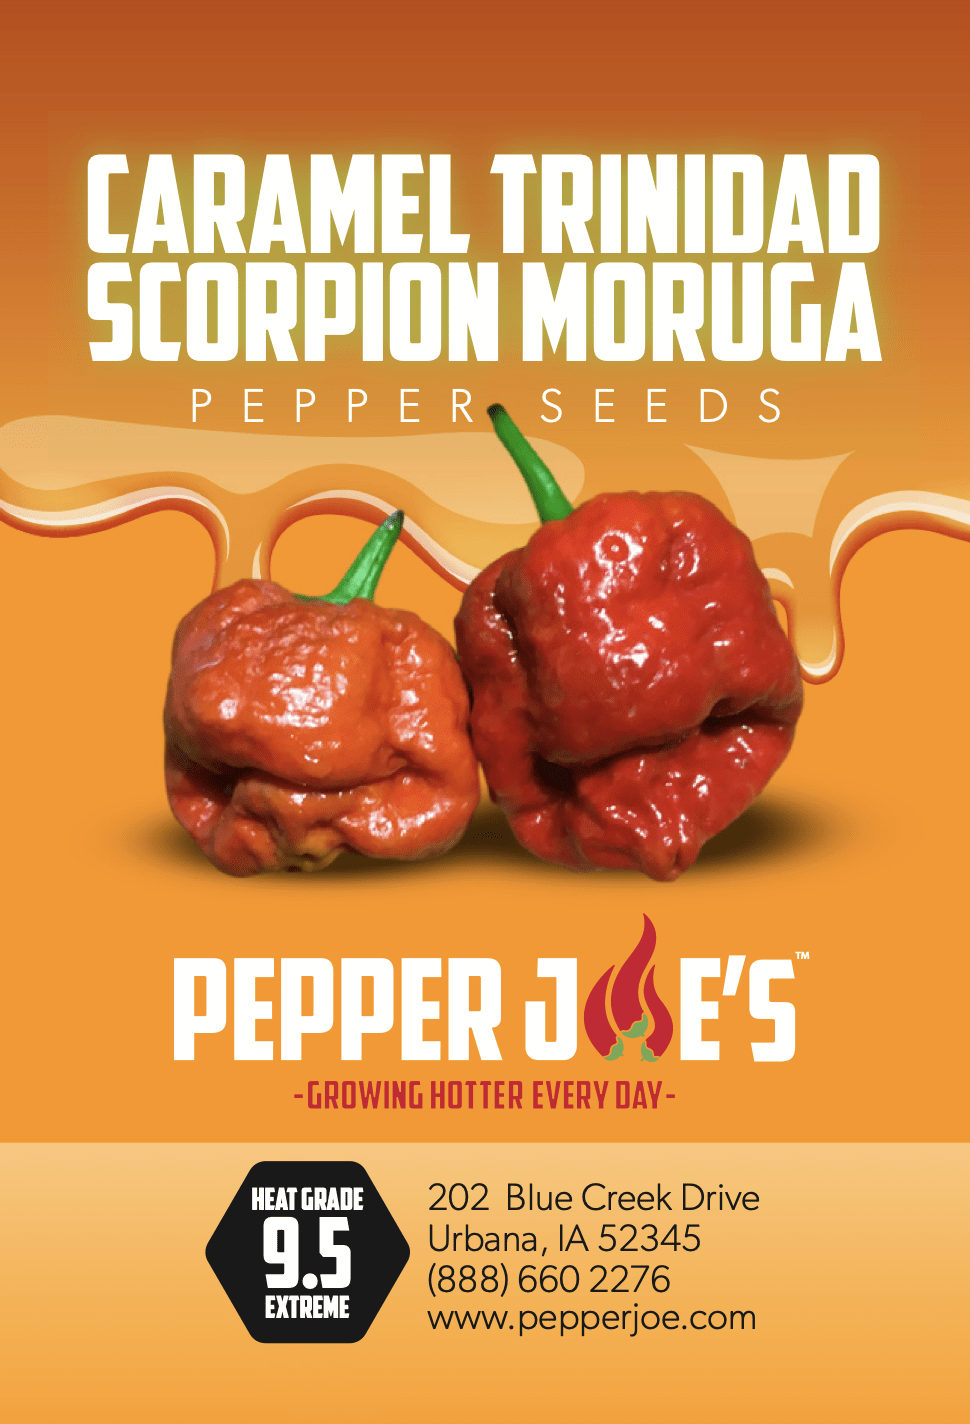 Caramel Trinidad Scorpion Moruga Hot Pepper Seeds - Pepper Joe's